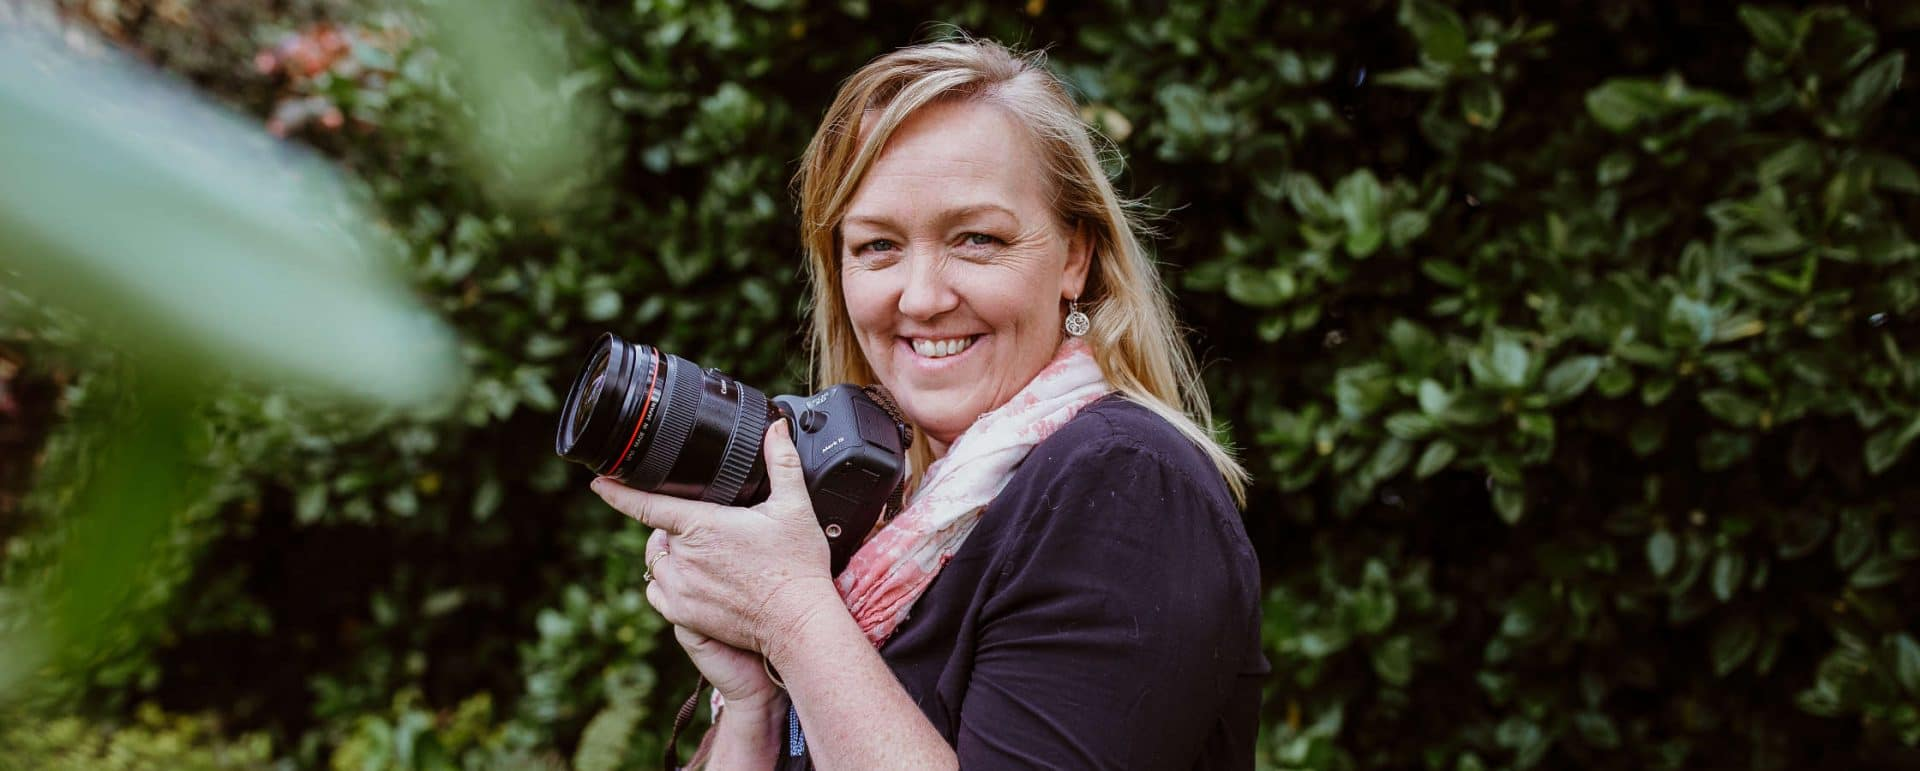 About Tamara Stone - Doula & Photographer - South West